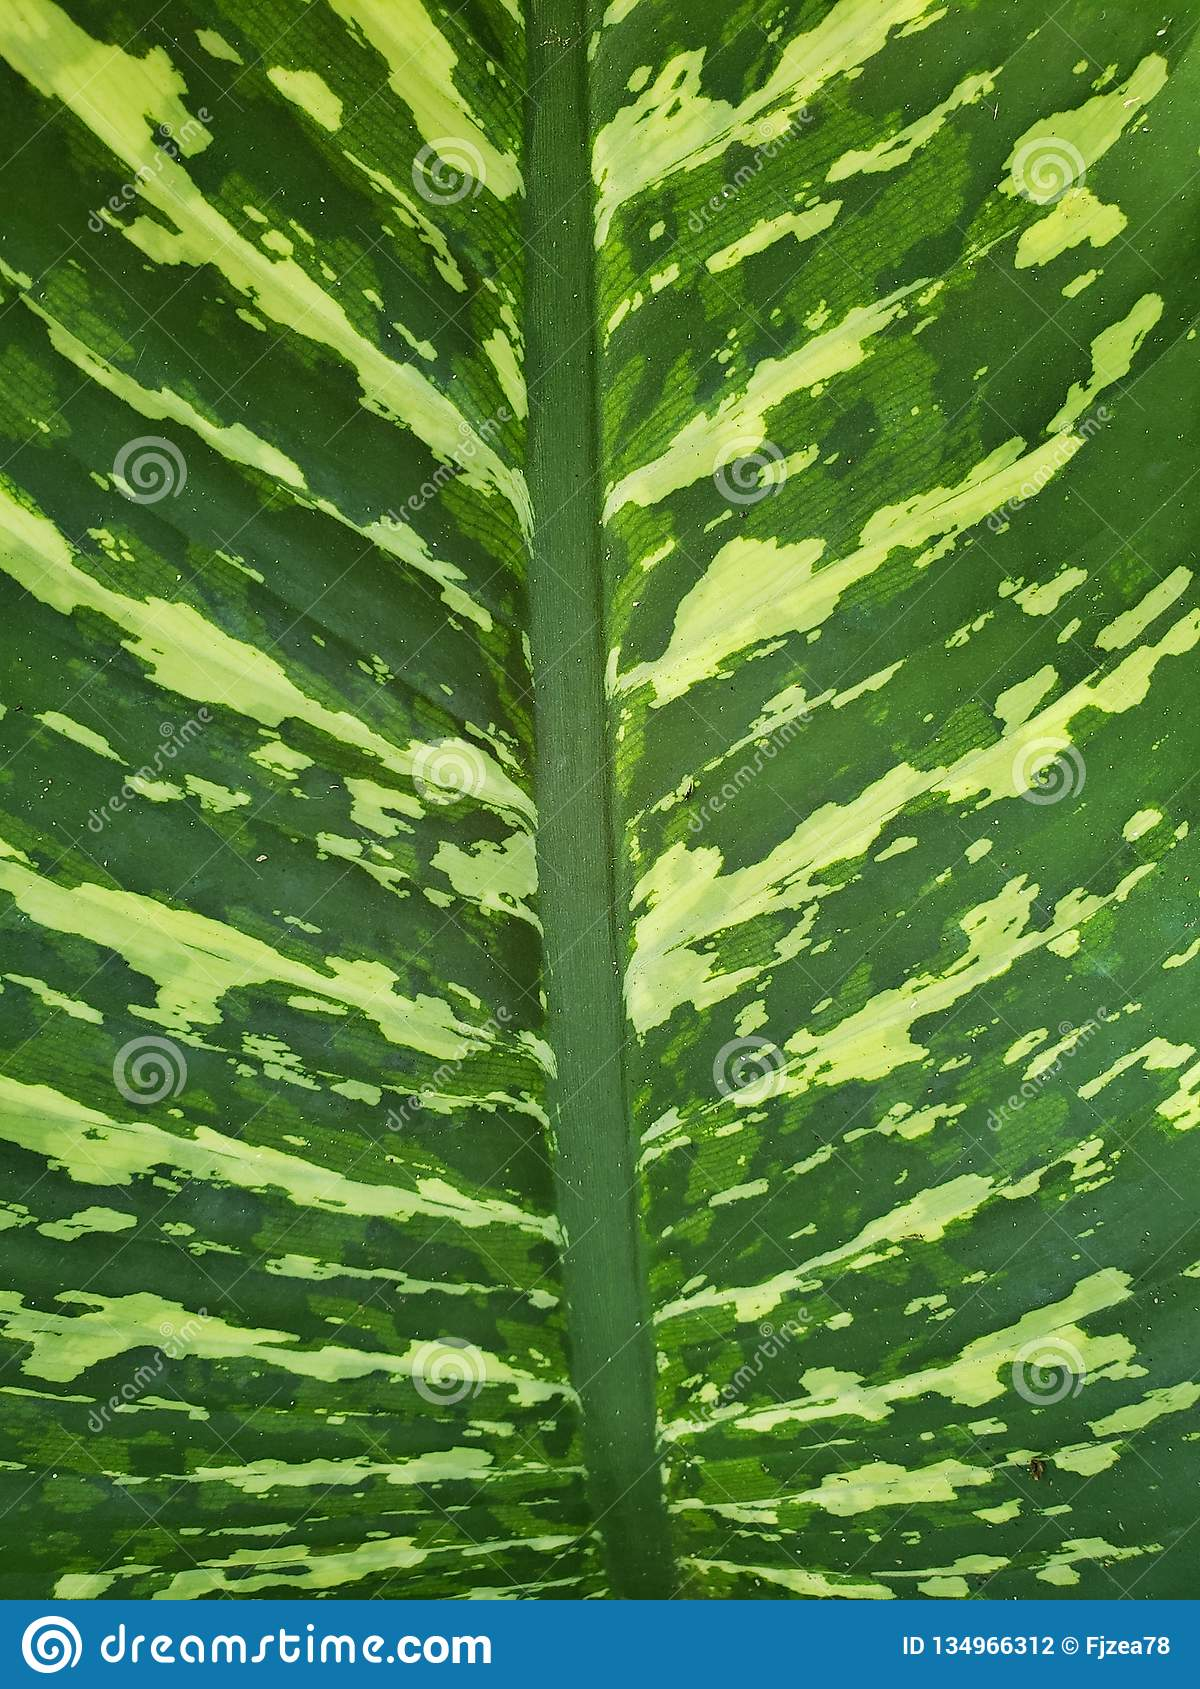 Approaching A Leaf Of Tropical Plant With Green And Yellow